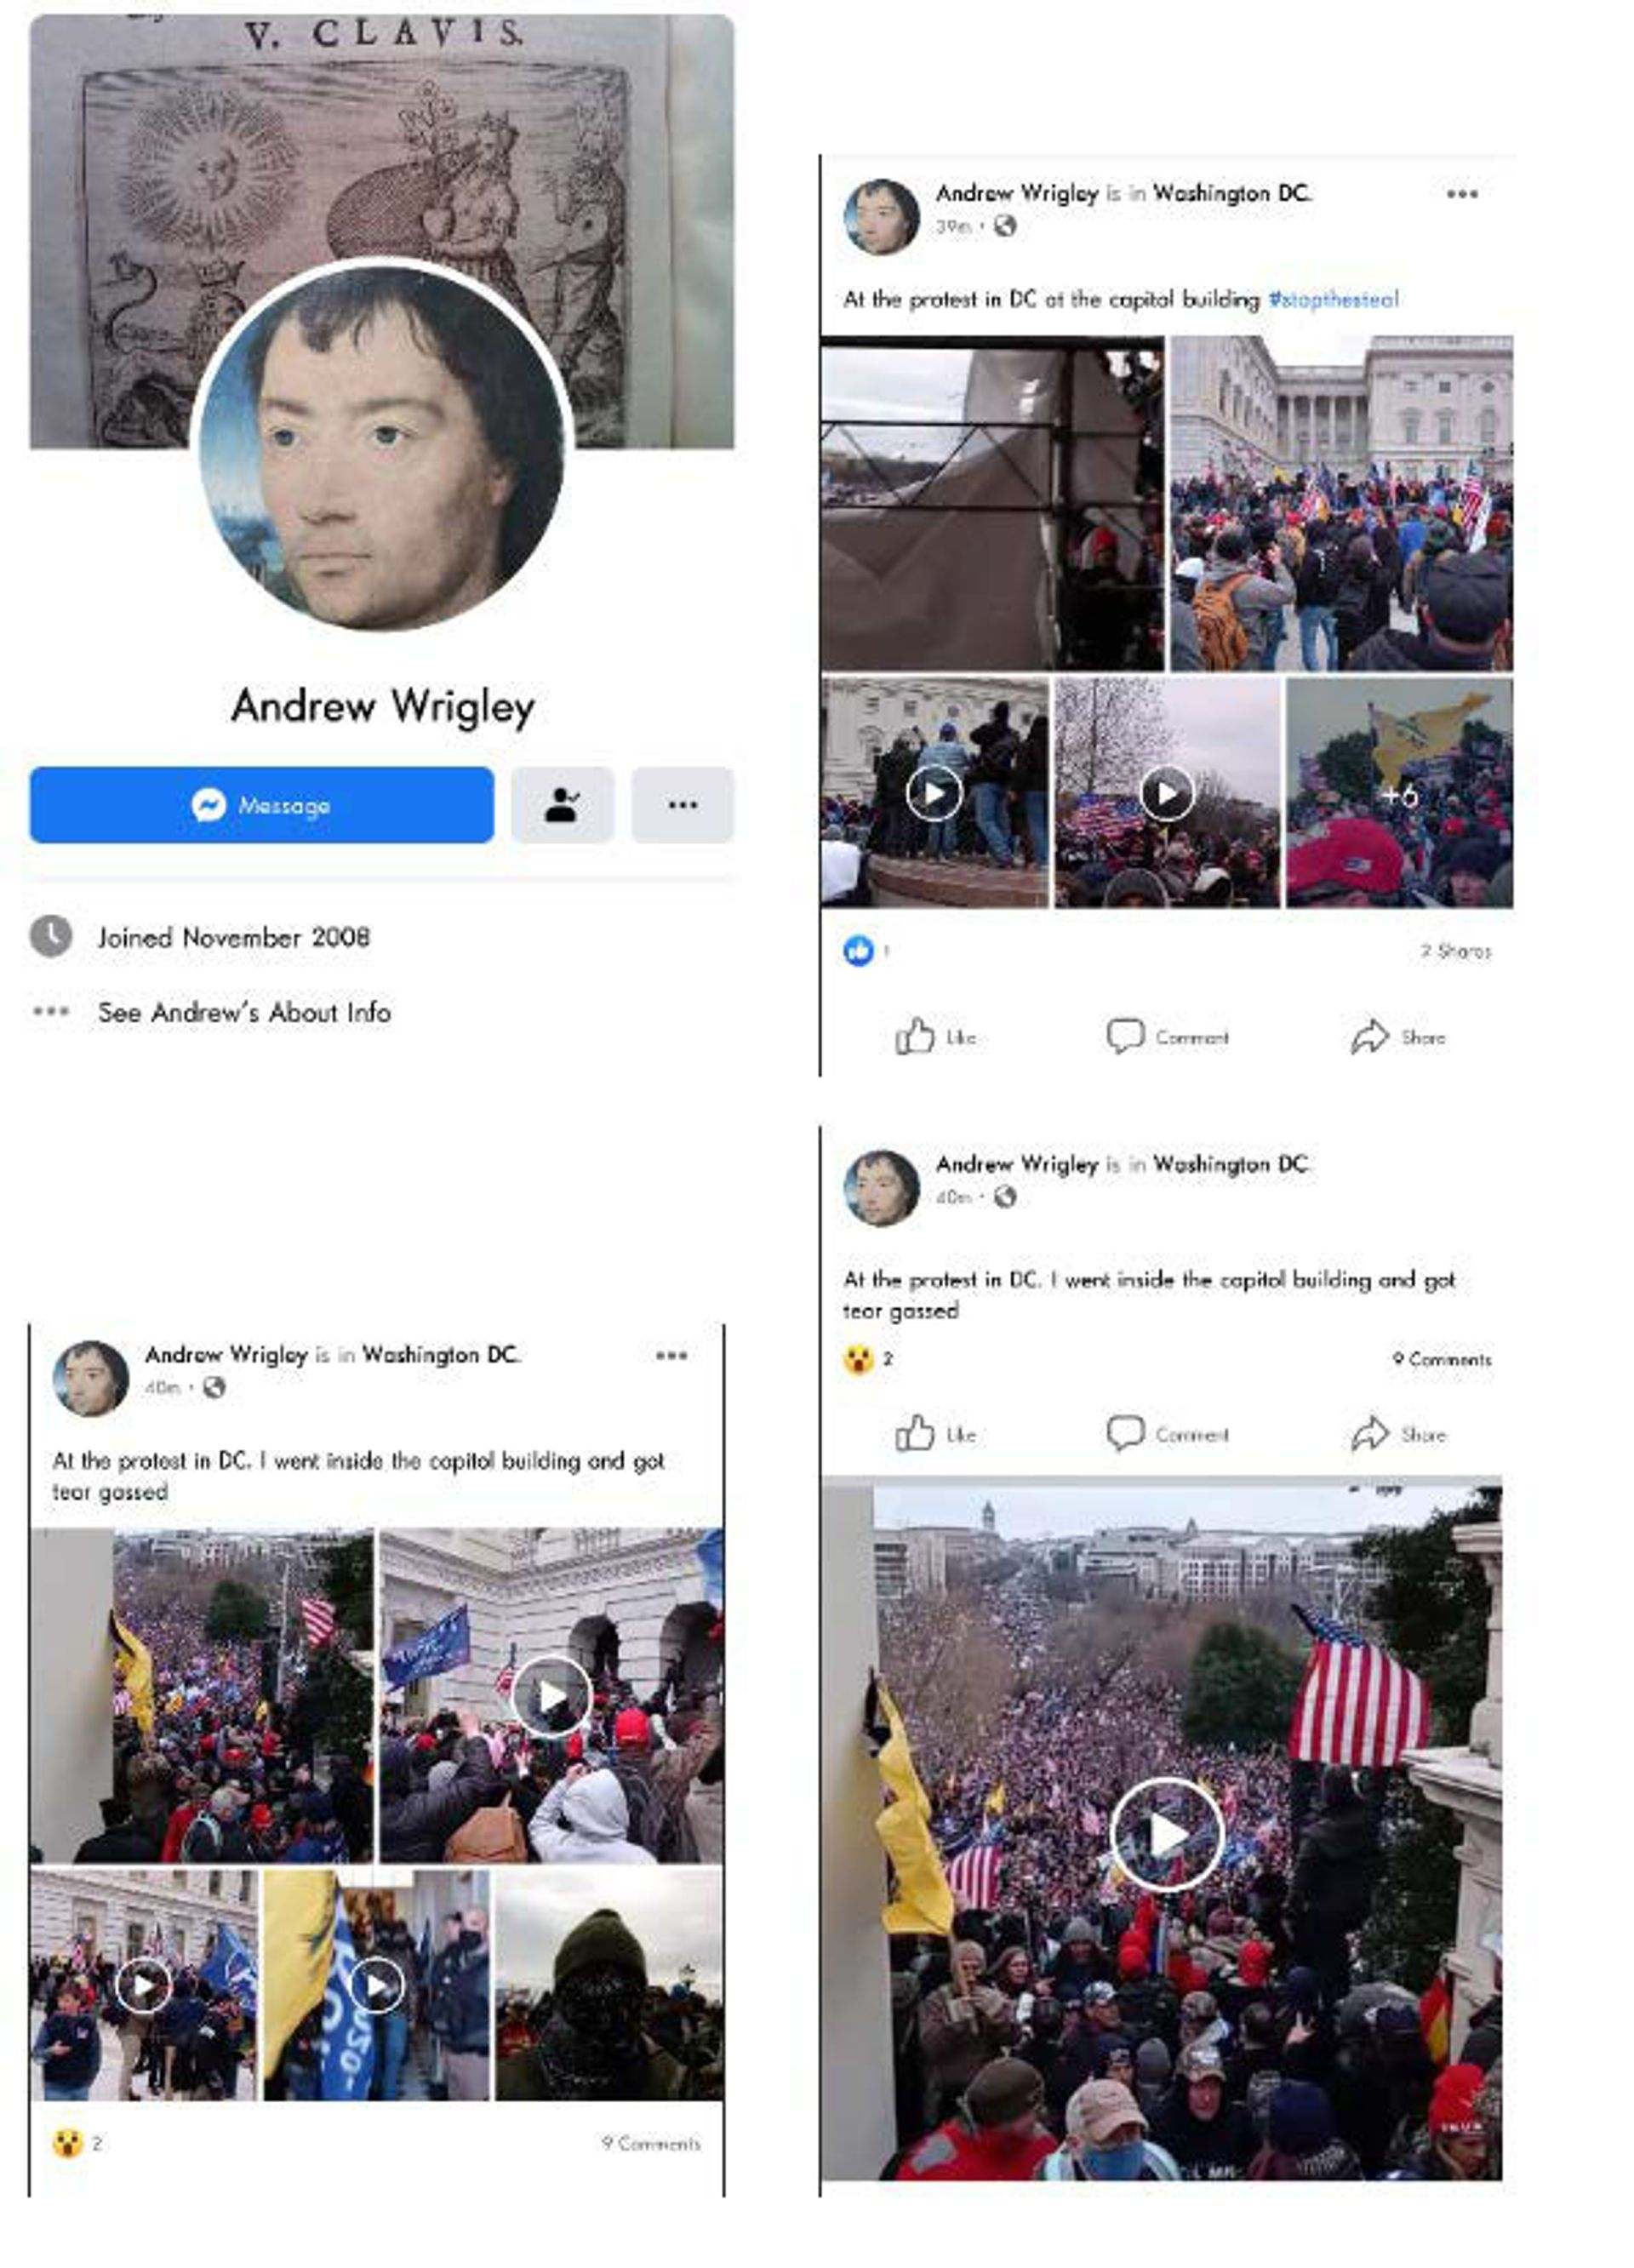 United States Capitol Police identified Wrigley from his social media posts Photo: US Department of Justice